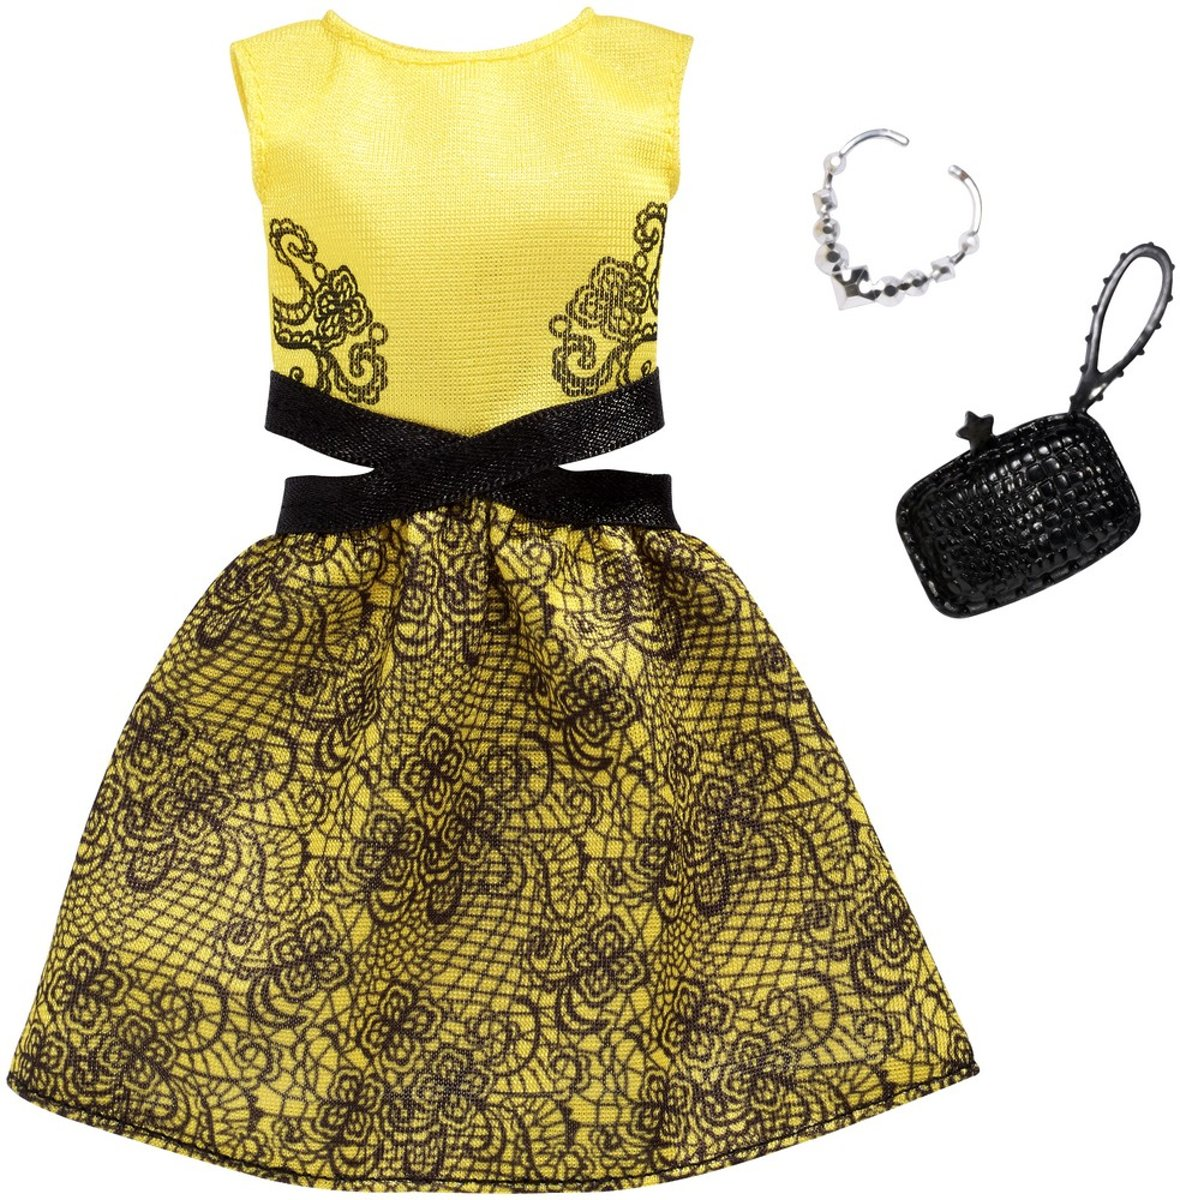 Barbie - Complete Looks Fashion - Yellow and Black Dress (FXJ08)